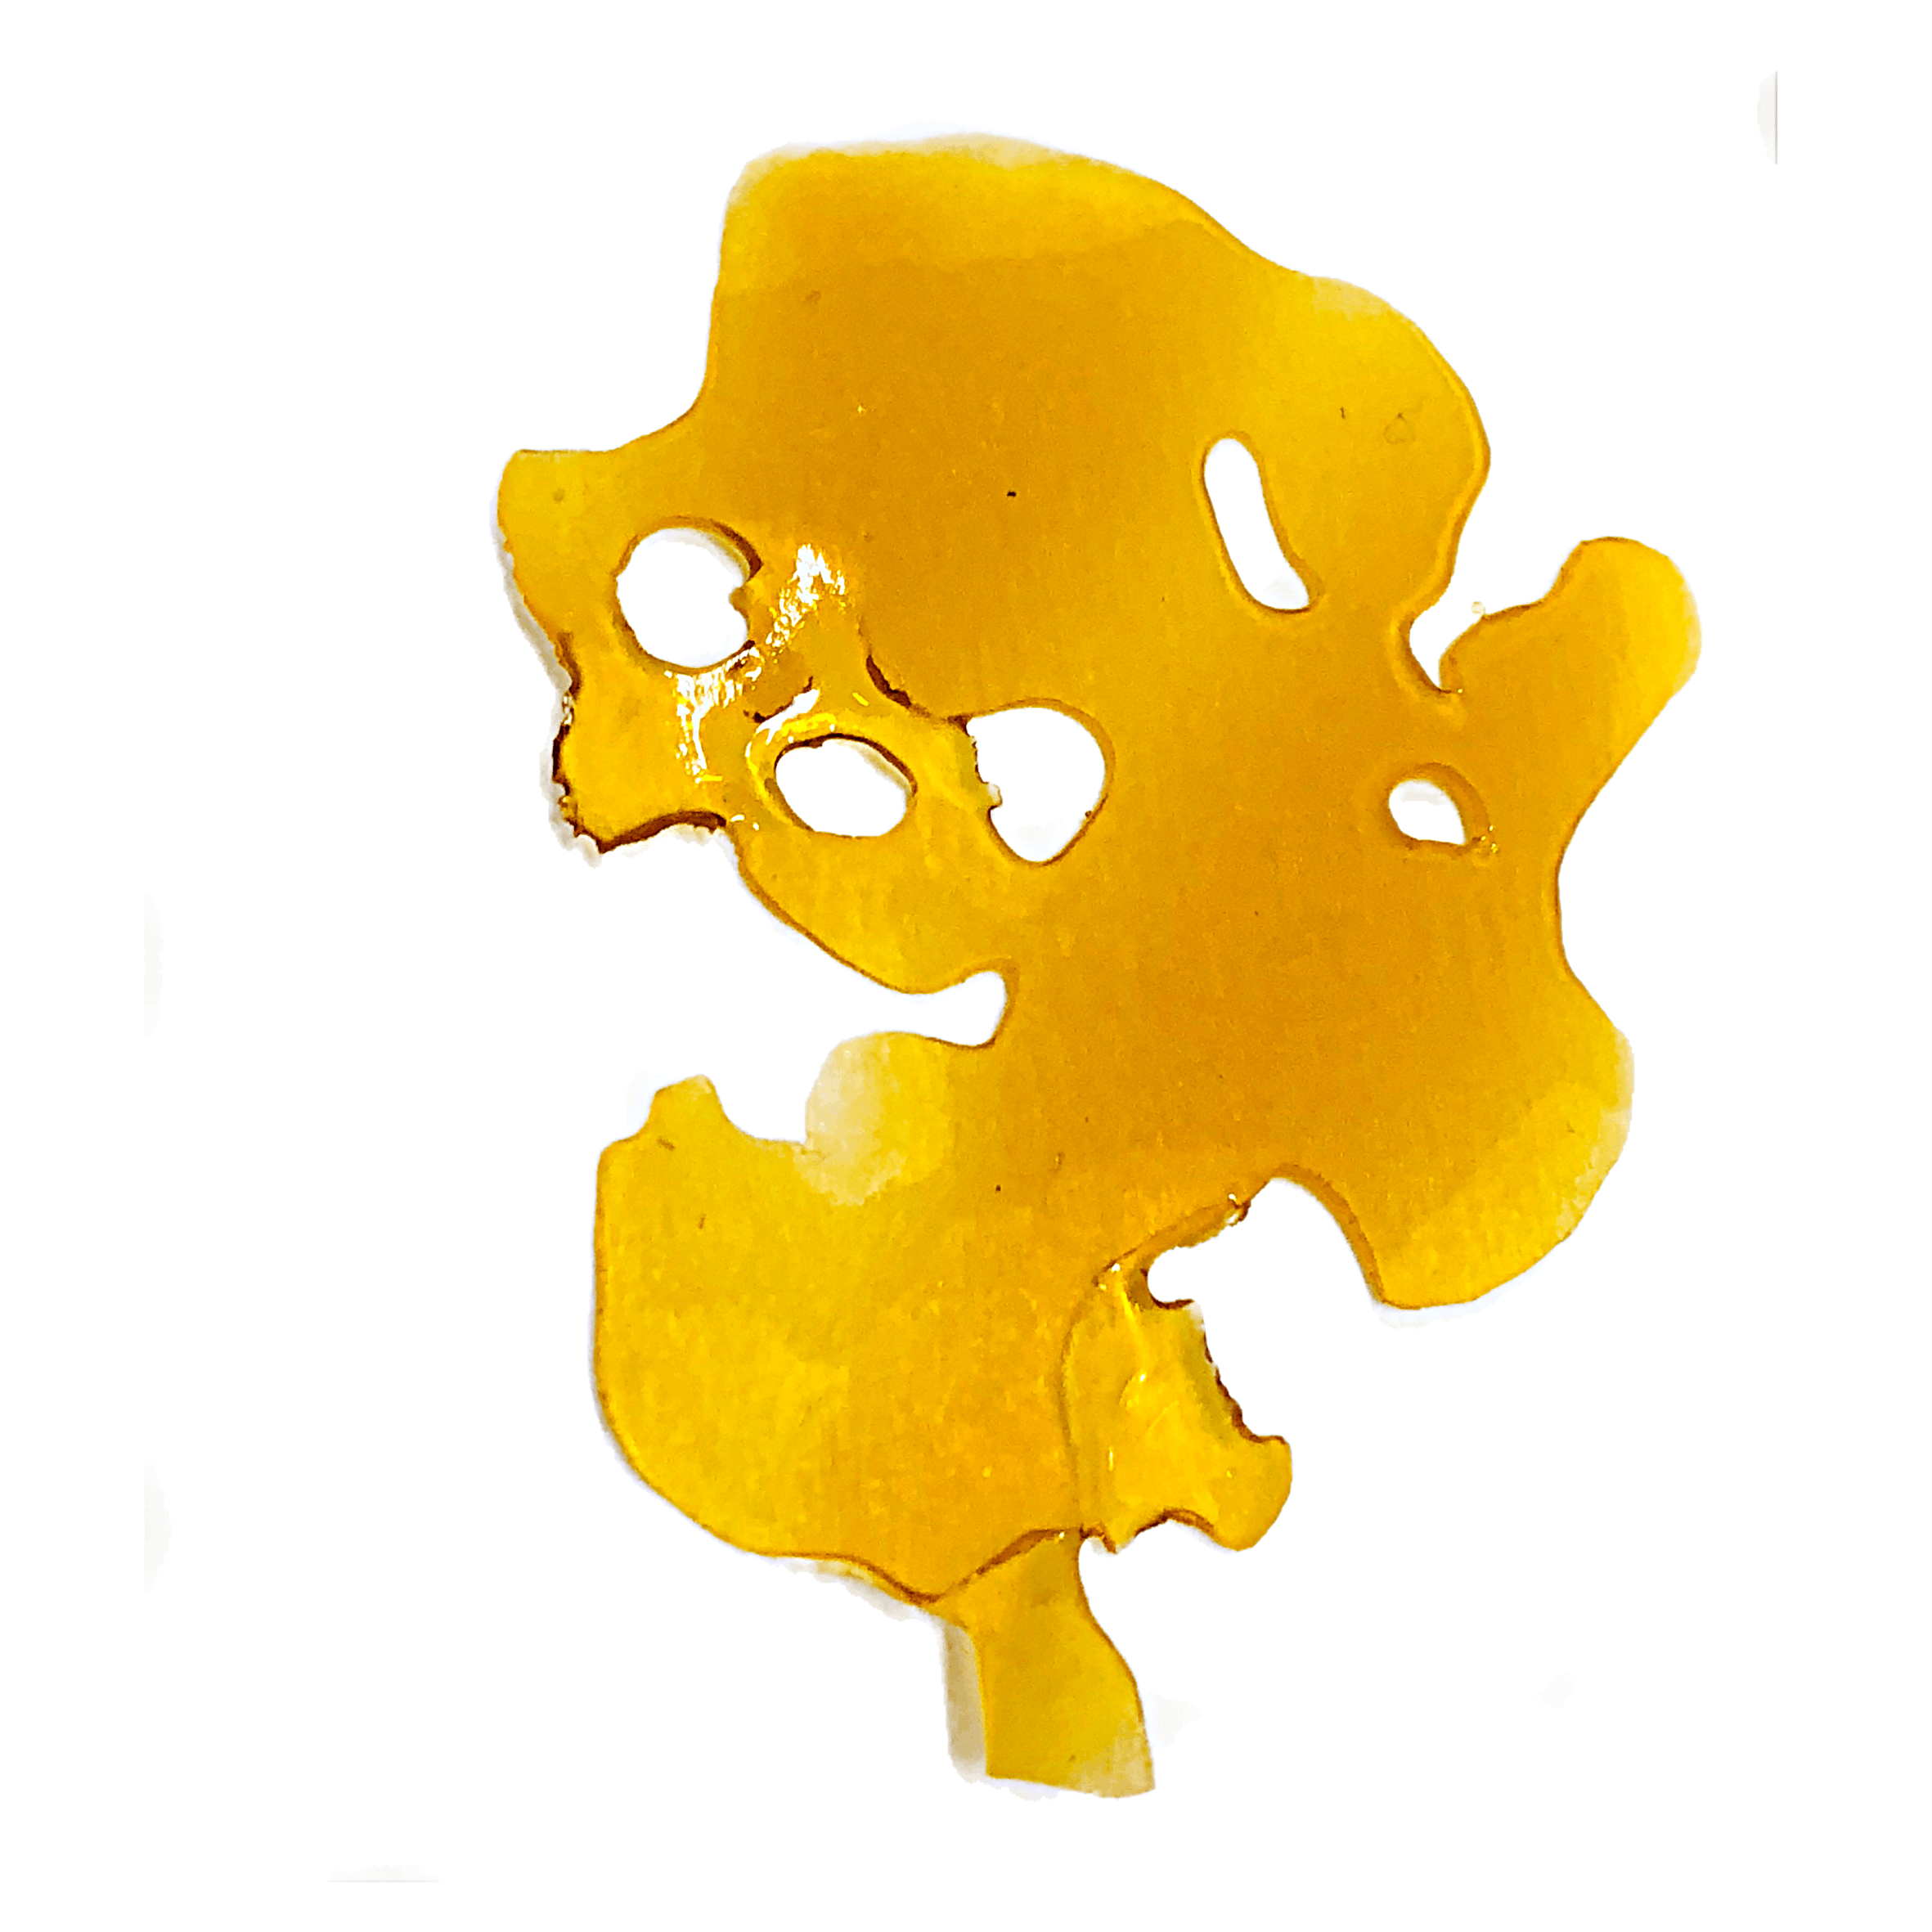 concentrate-queen-of-hearts-727-og-shatter